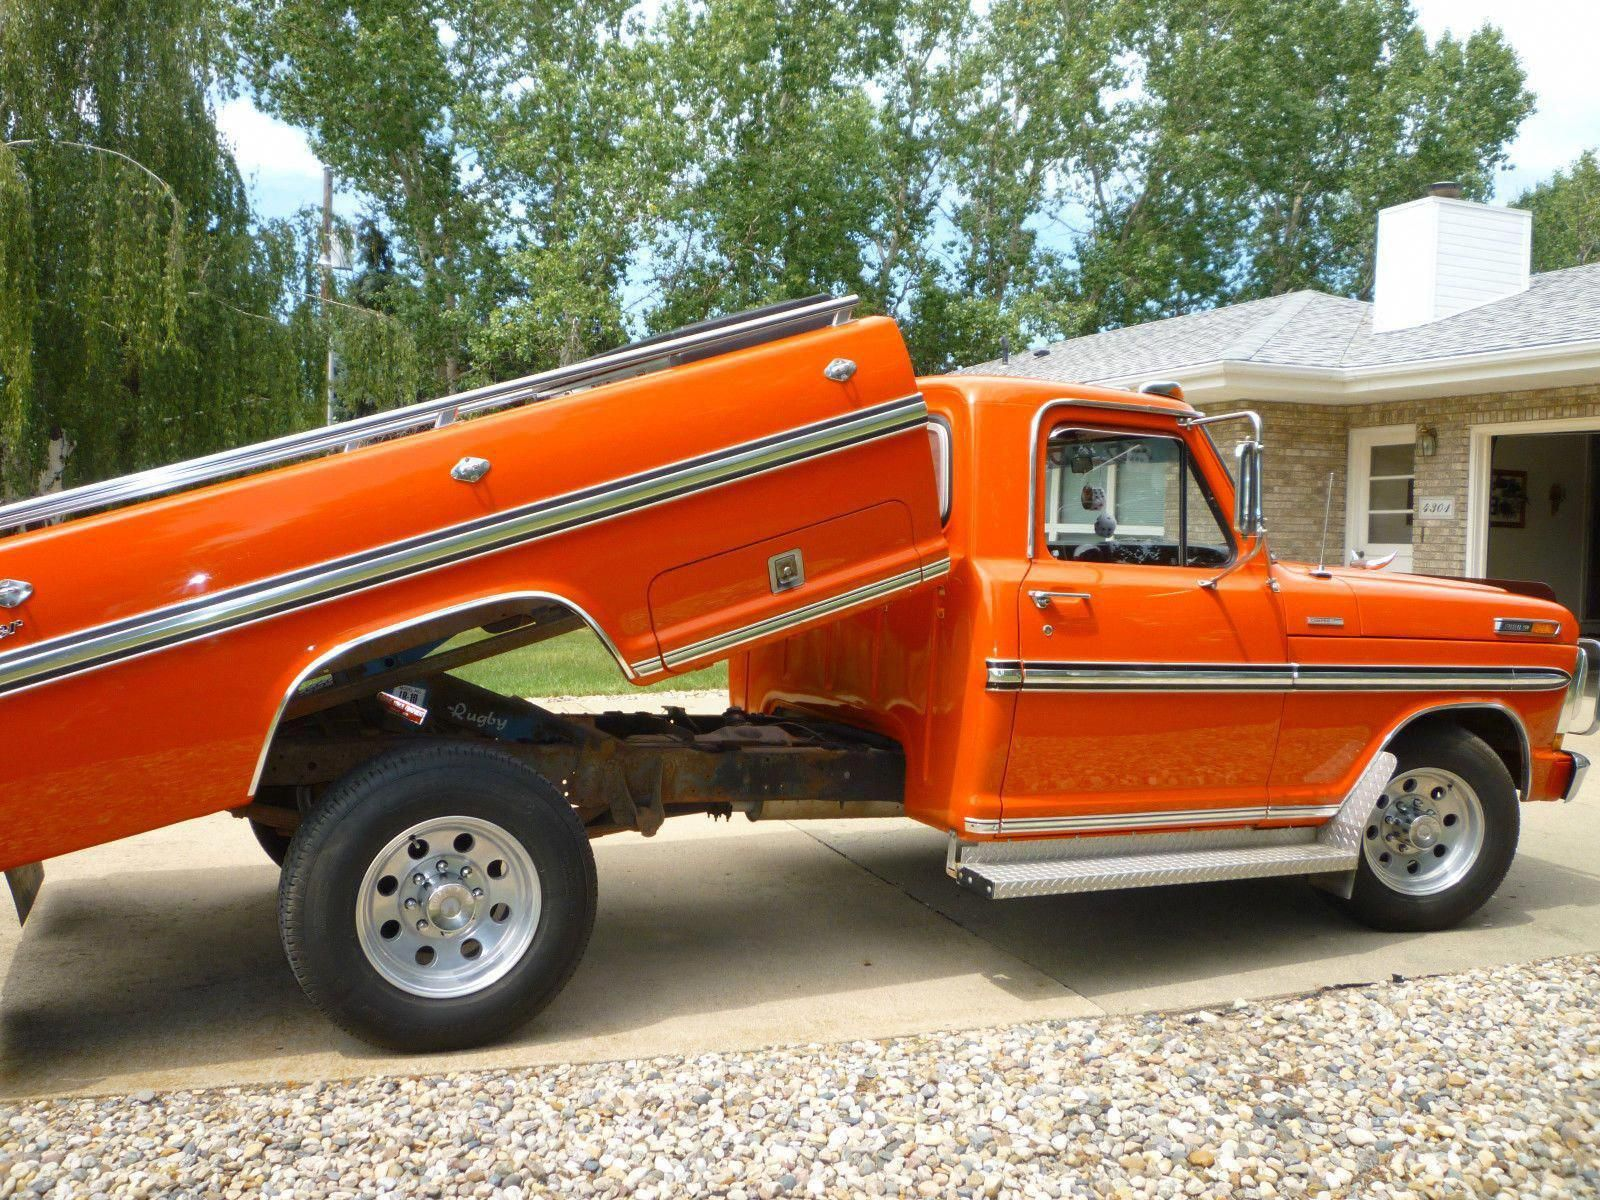 Wowww I Honestly Adore This Color Choice For This 1970 F150 1970f150 Old Ford Trucks Ford Trucks Car Rental Company